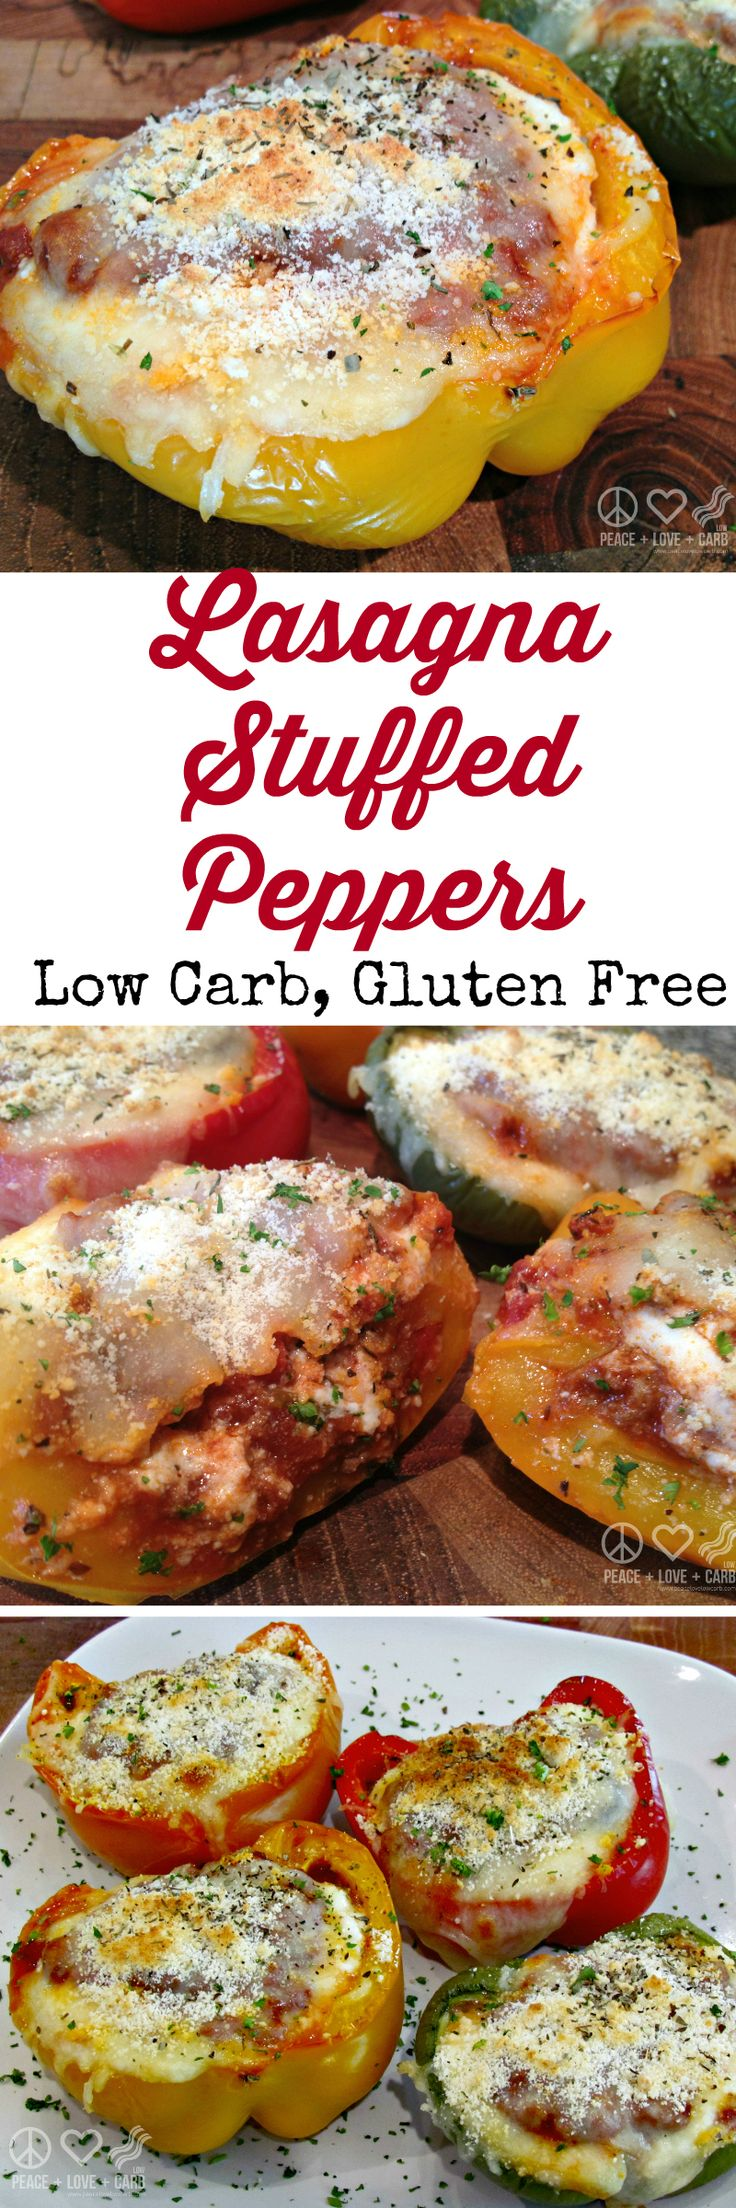 Lasagna Stuffed Peppers – Low Carb, Gluten-Free